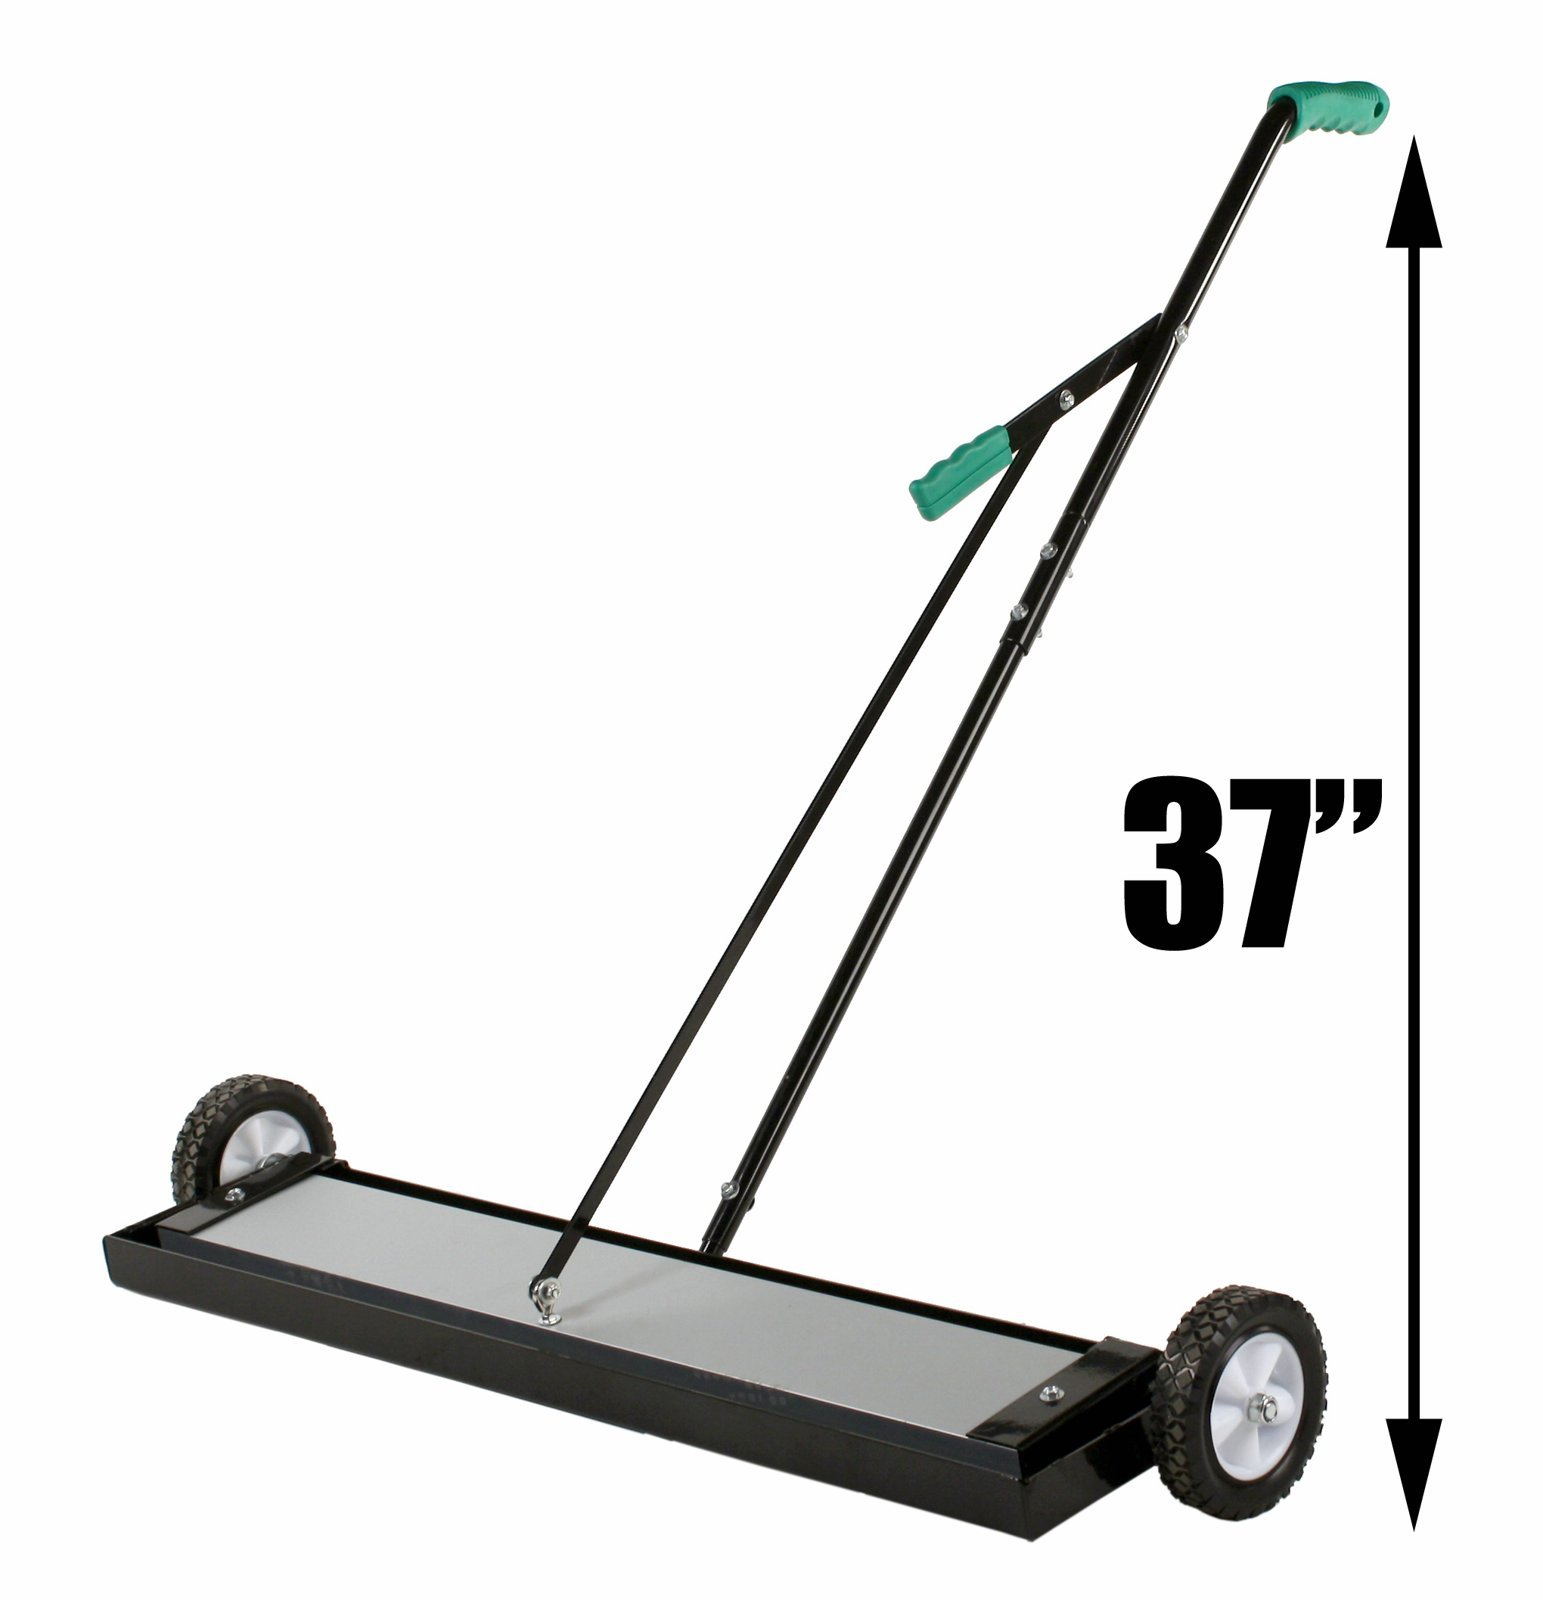 Steel Dragon Tools 36'' Magnetic Roller Sweeper Magnet Tool with Release Lever by Steel Dragon Tools (Image #2)